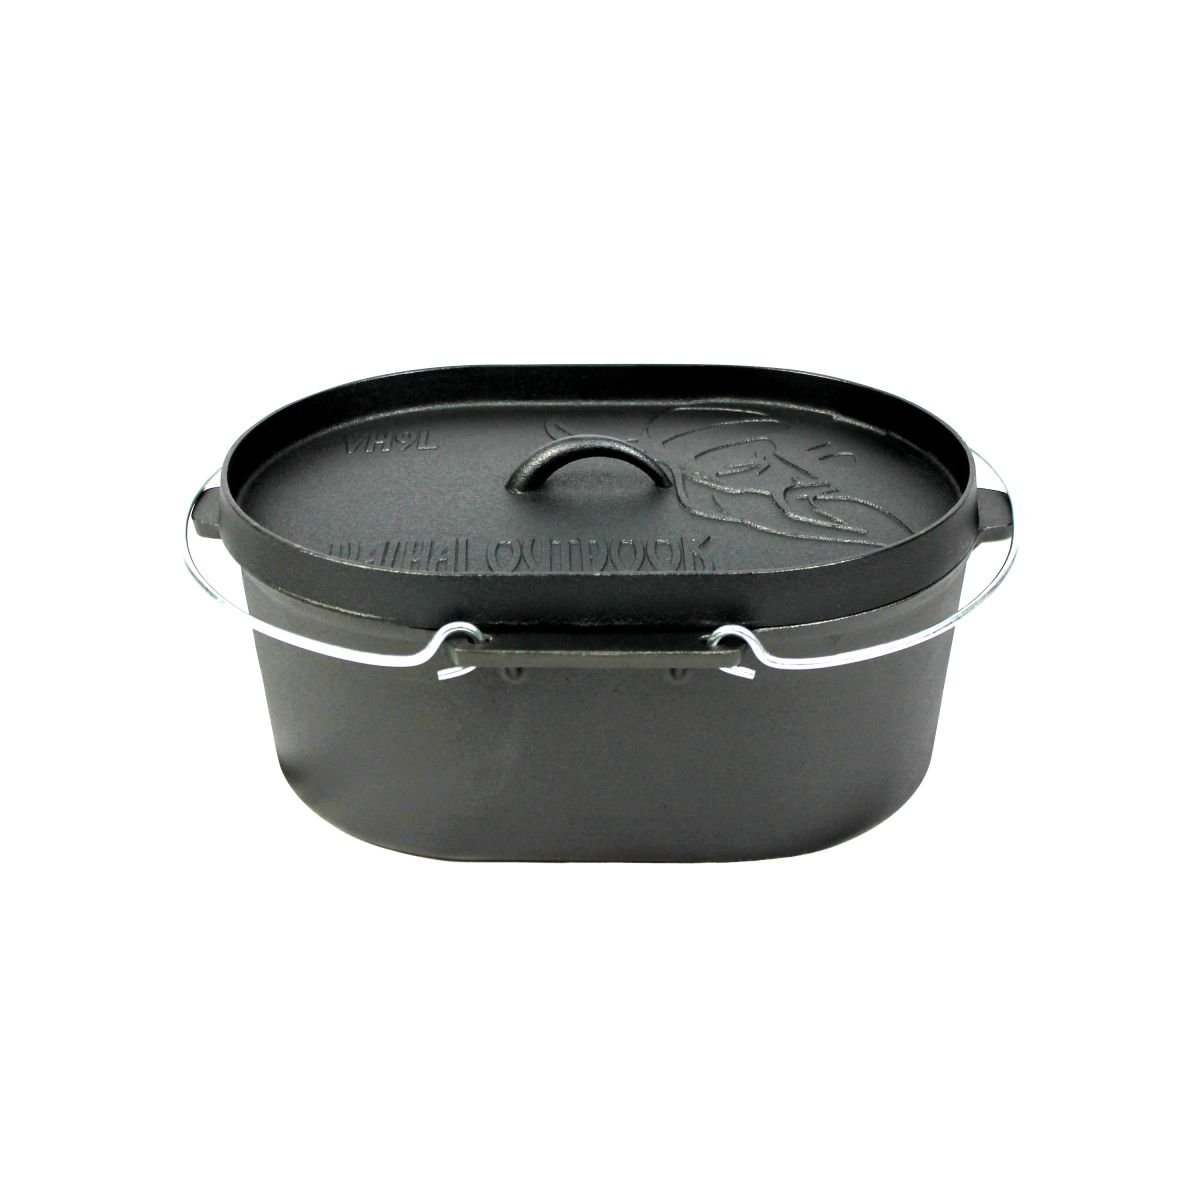 vh9l dutch oven 9l without feet